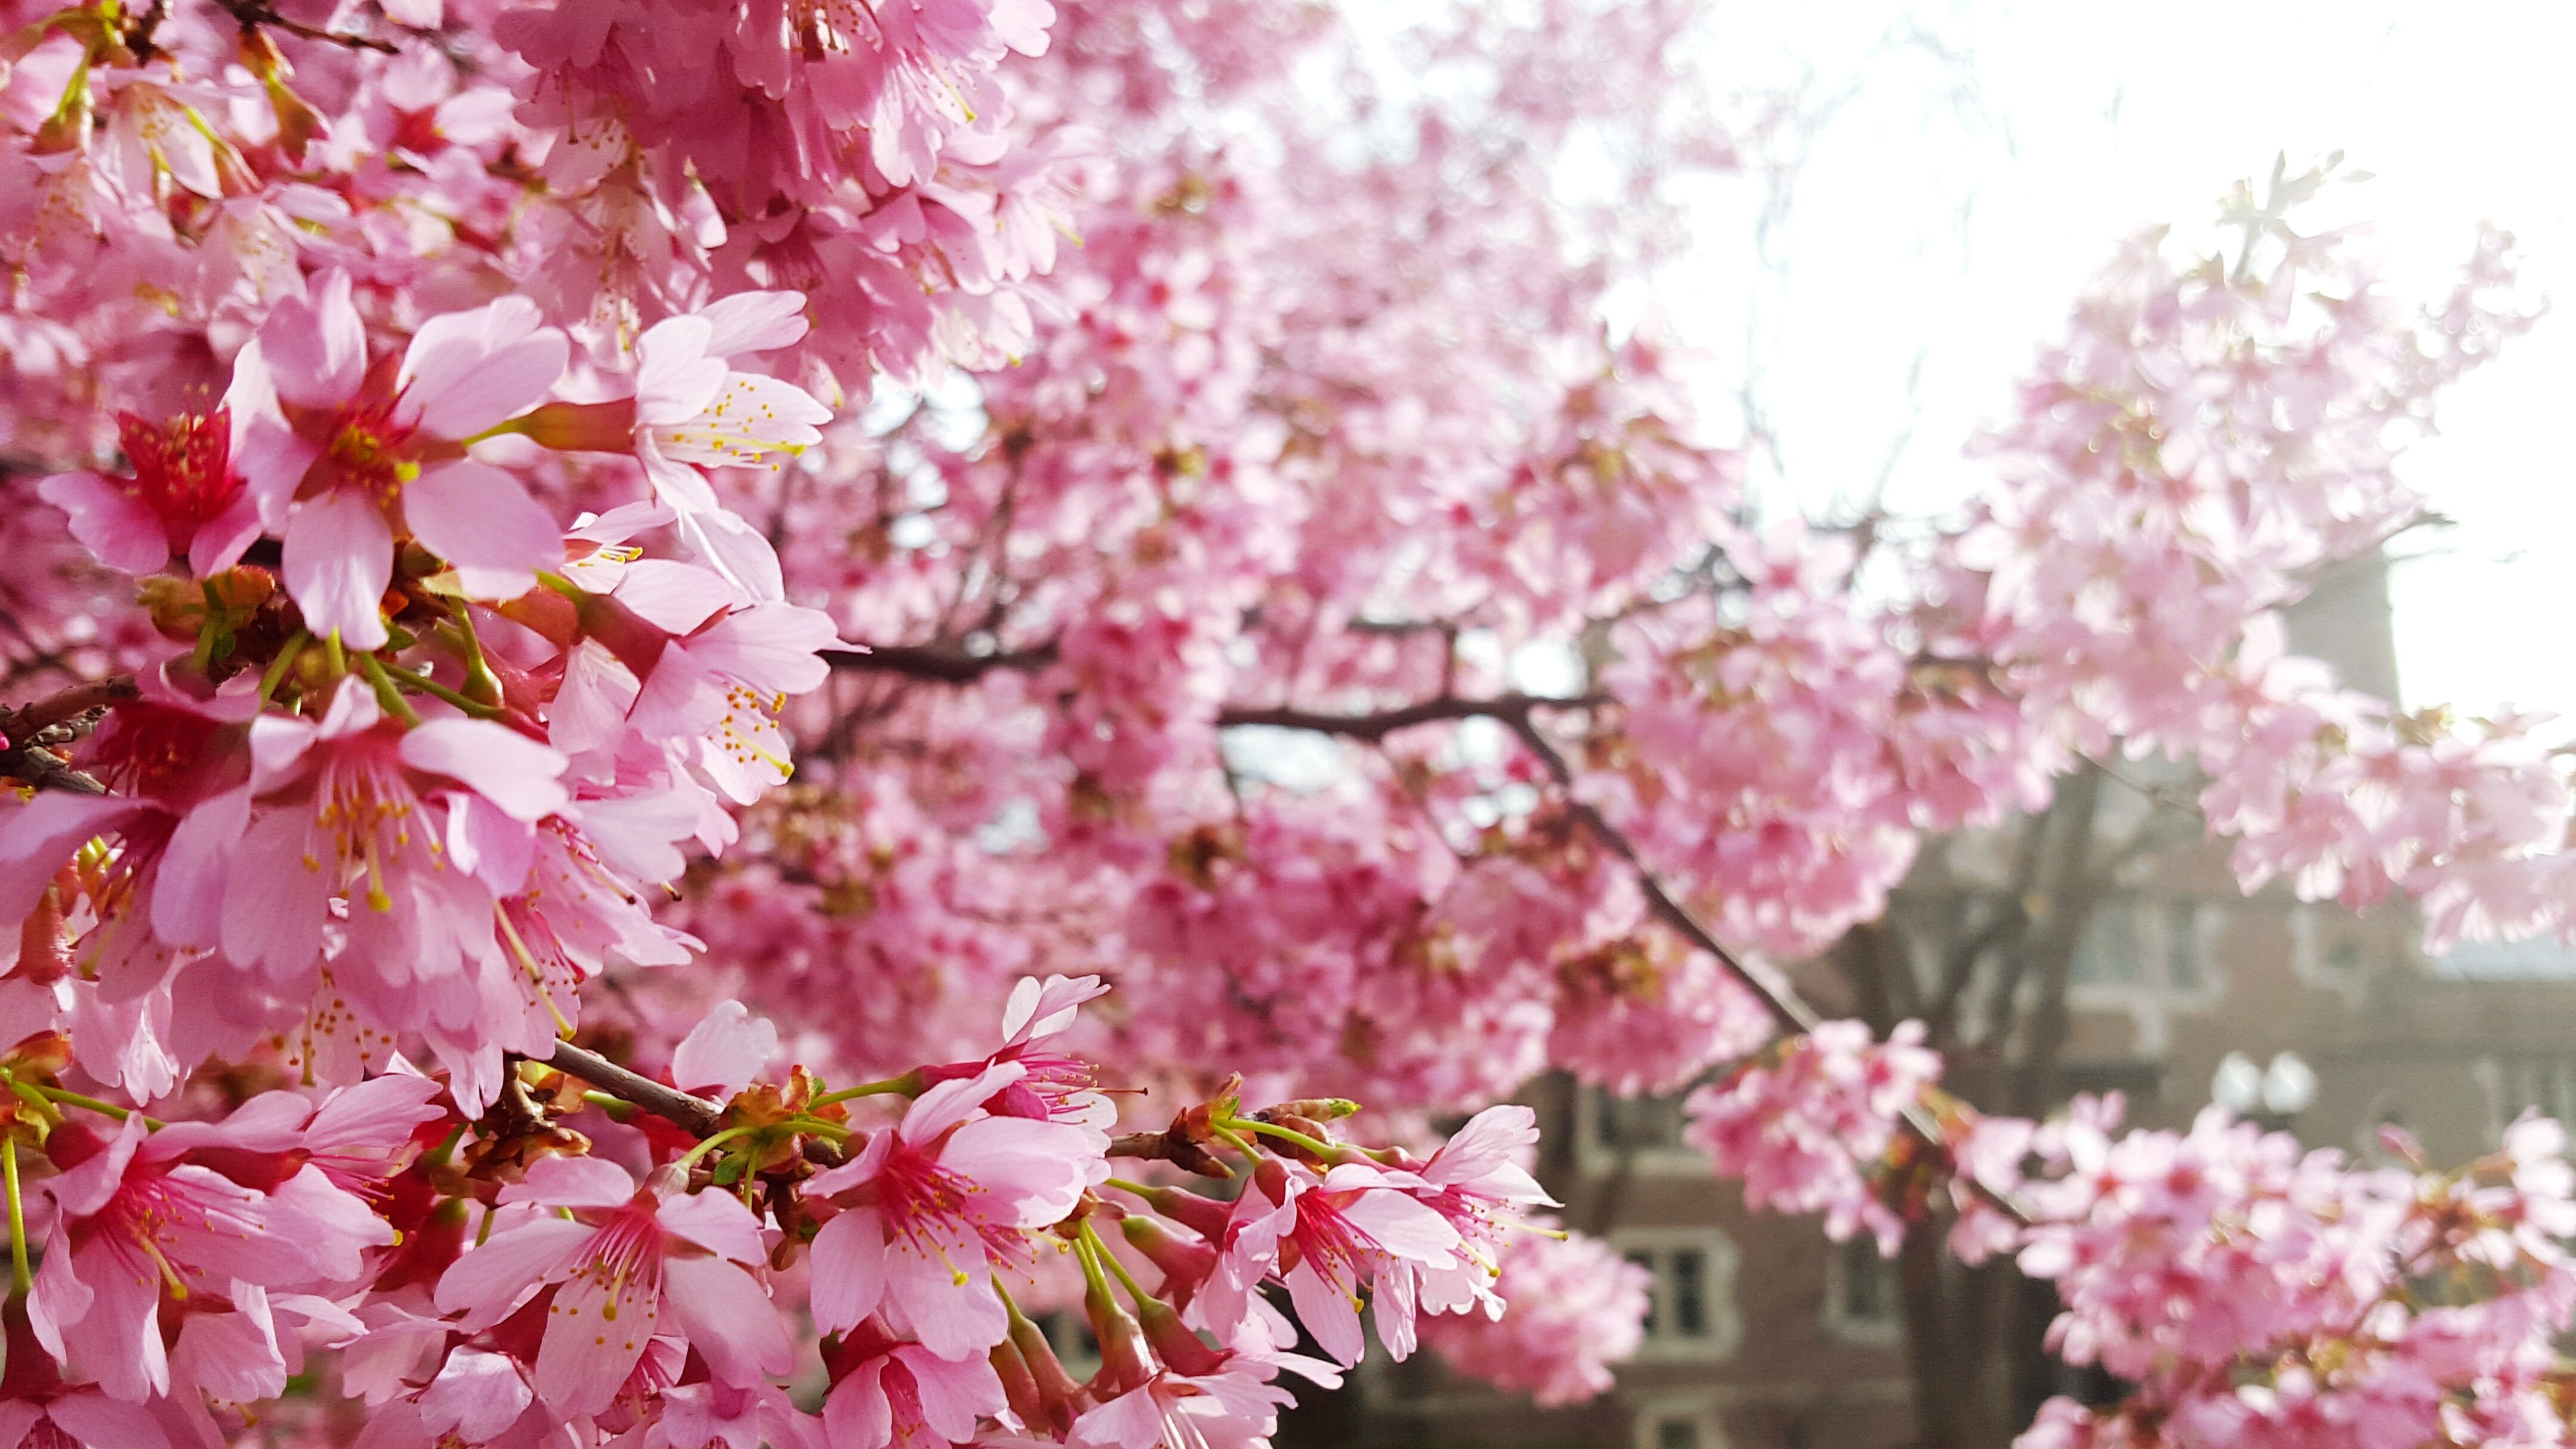 651ad7305093e Best Cherry Blossom Cities In The World—Where to See Cherry Blossoms